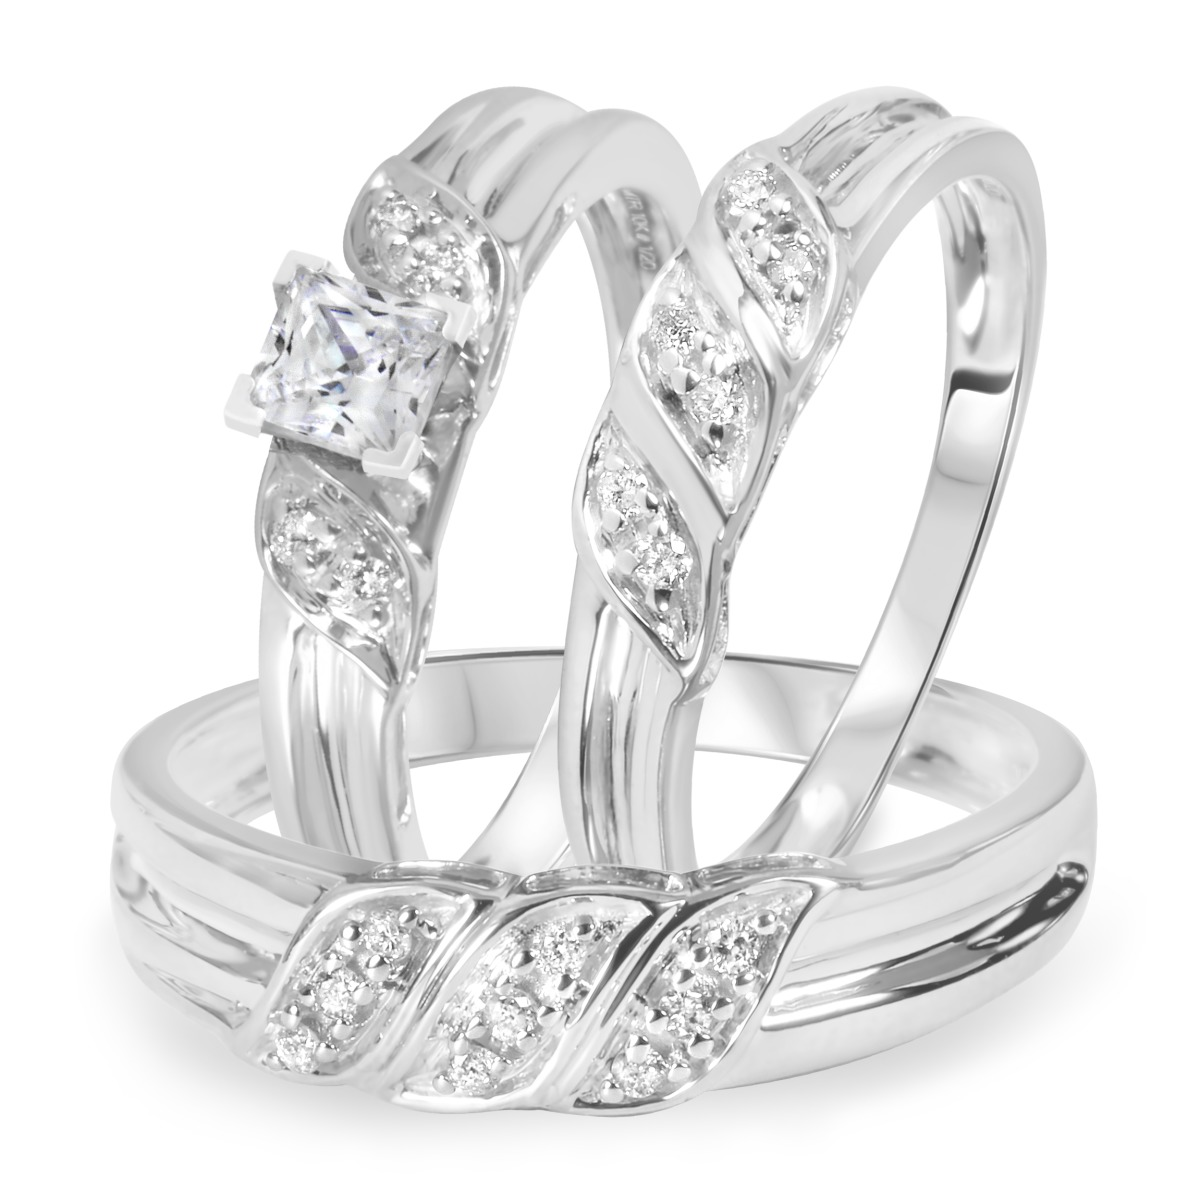 1/2 CT. T.W. Diamond Ladies Engagement Ring, Wedding Band, Men's Wedding Band Matching Set 14K White Gold